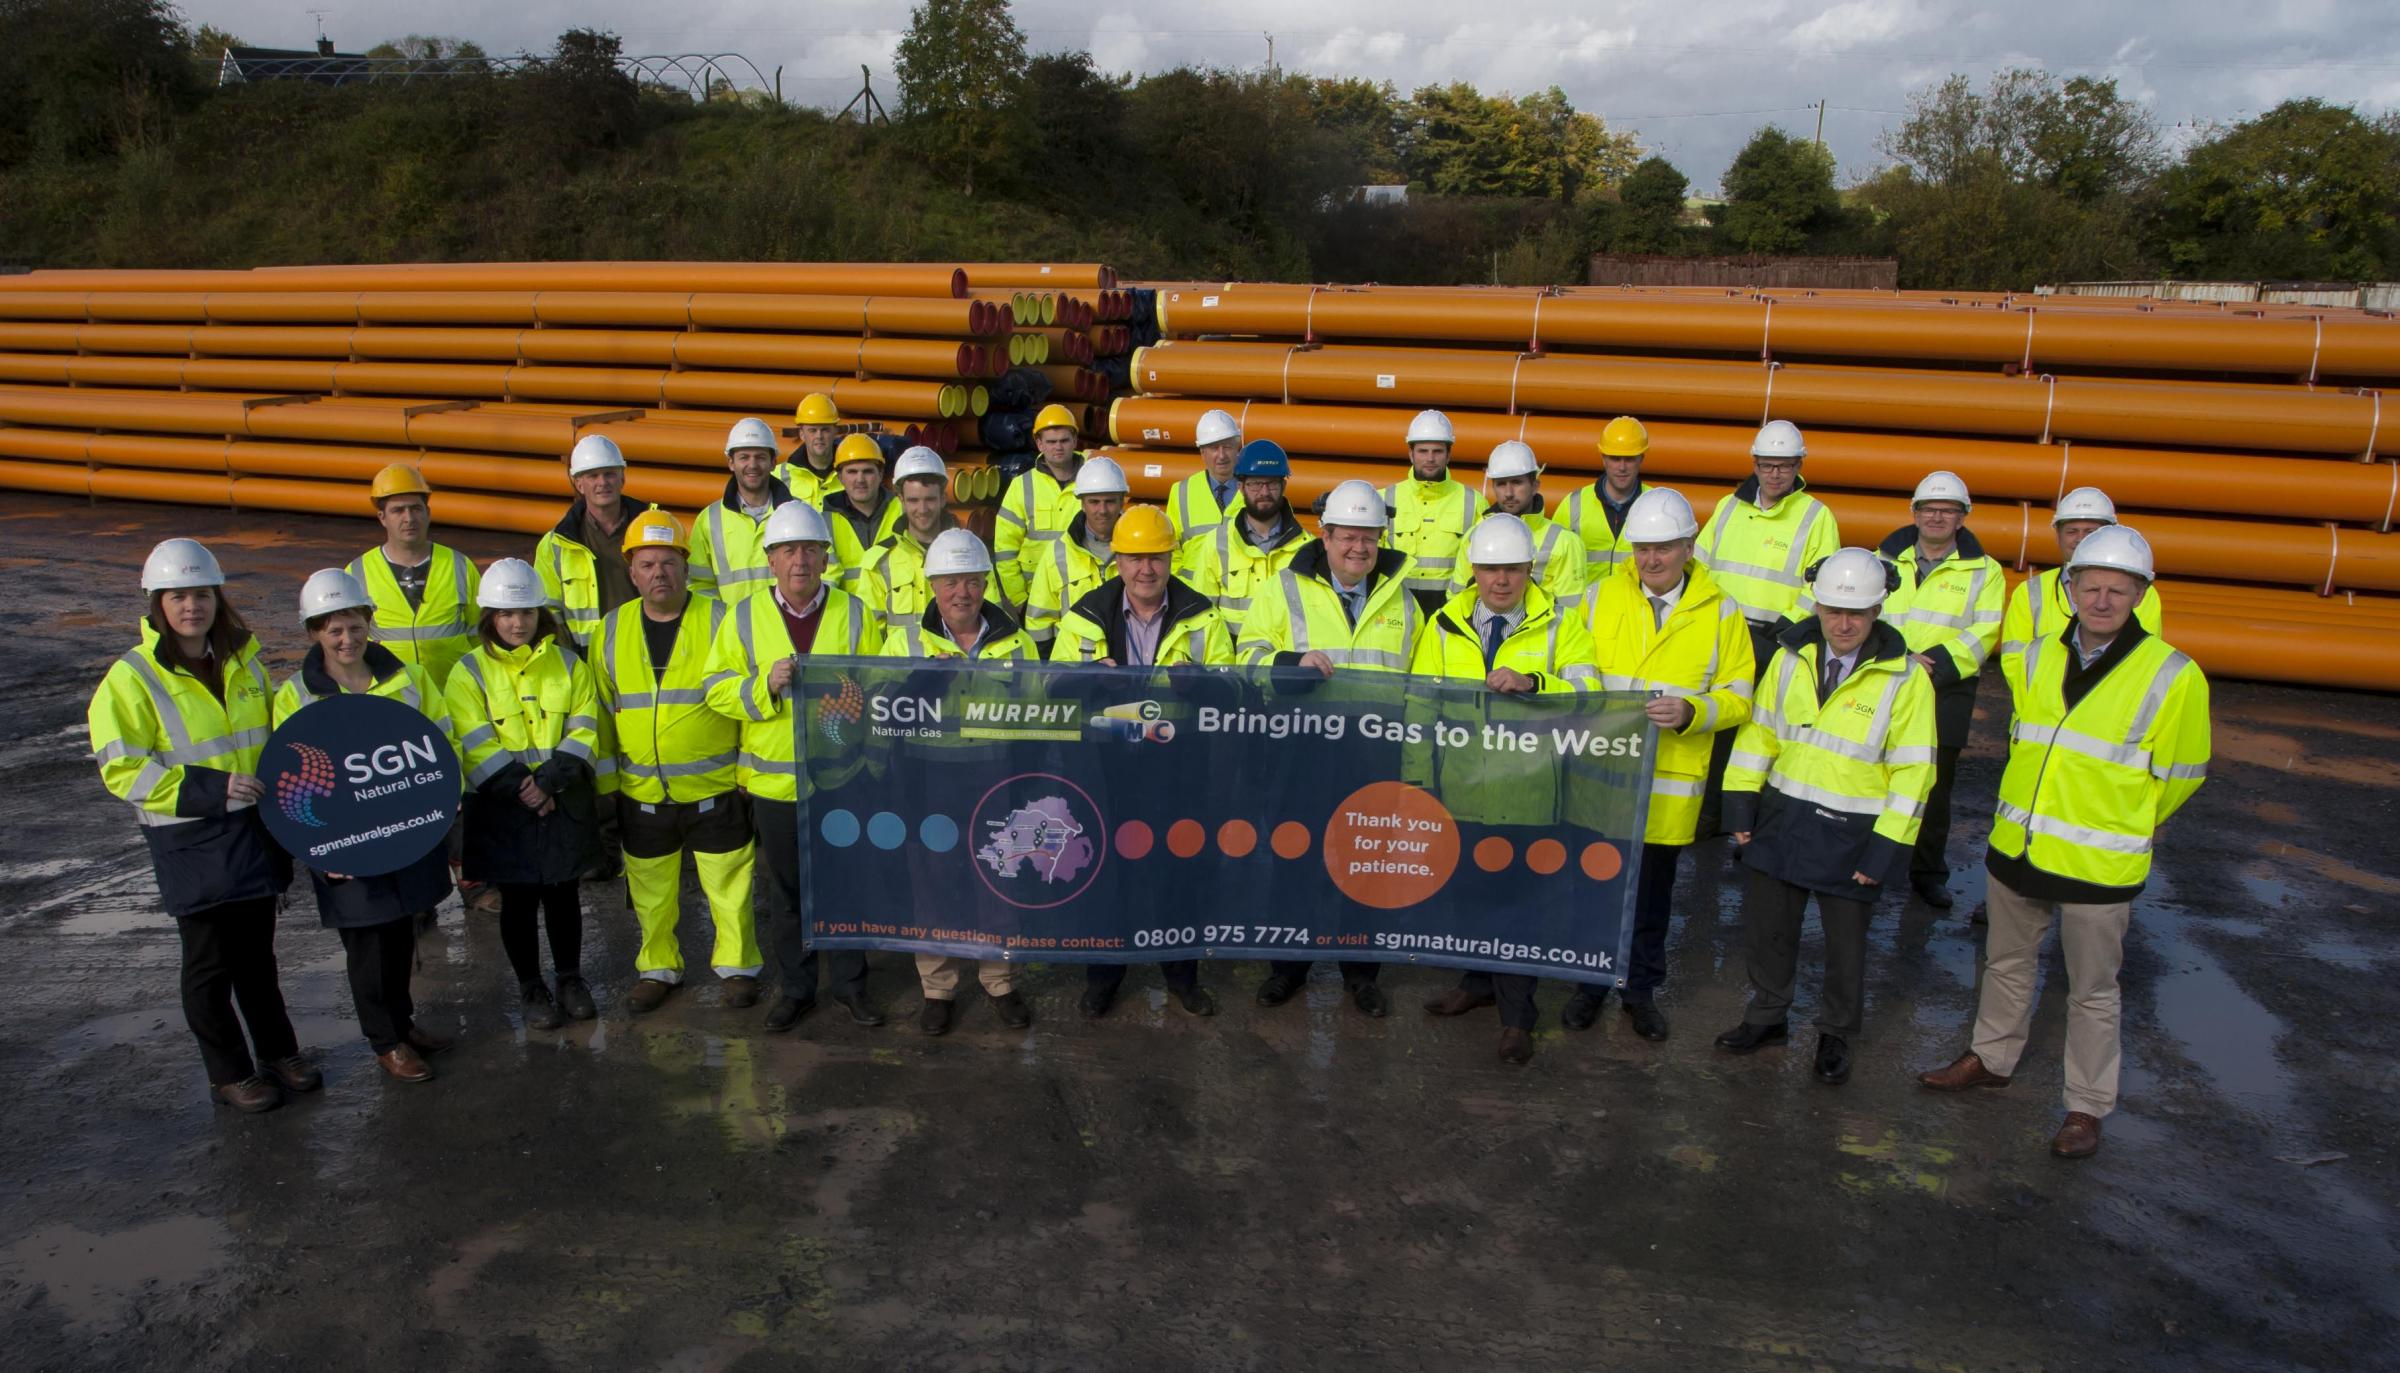 The Gas to the West project team pictured after SGN Natural Gas and partners Mutual Energy announced the appointment of the main works contractor for Gas to the West.